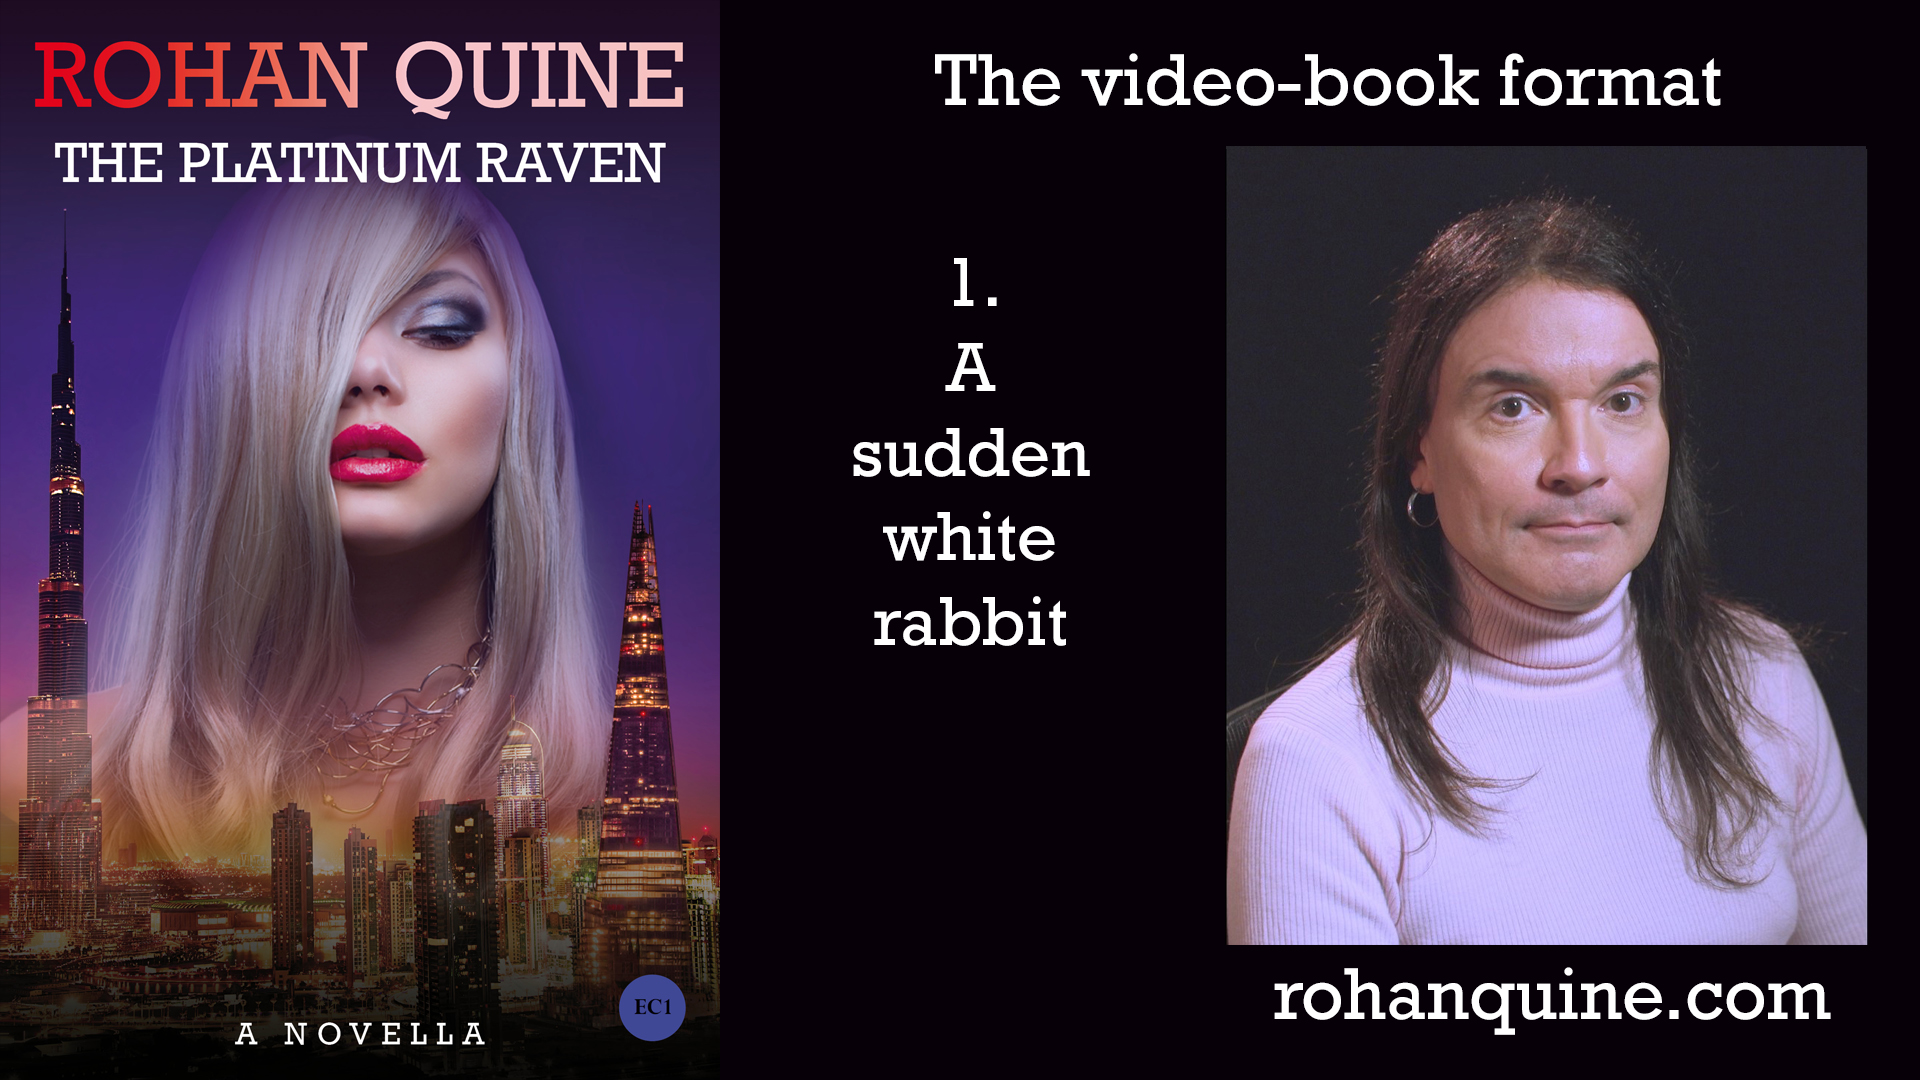 THE PLATINUM RAVEN by Rohan Quine - video-book format - chapter 1